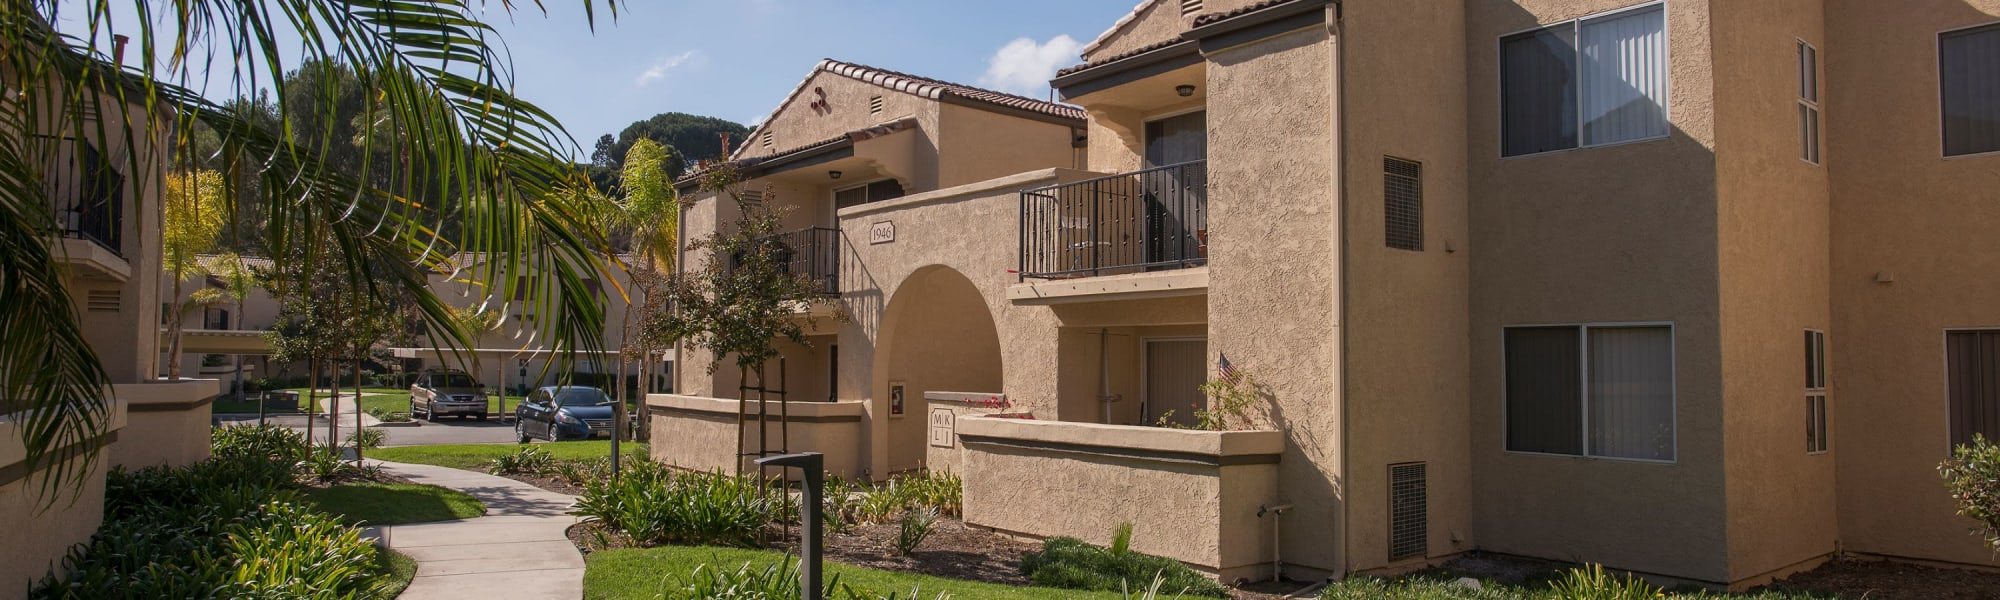 Floor plans at Shadow Ridge Apartment Homes in Simi Valley, California